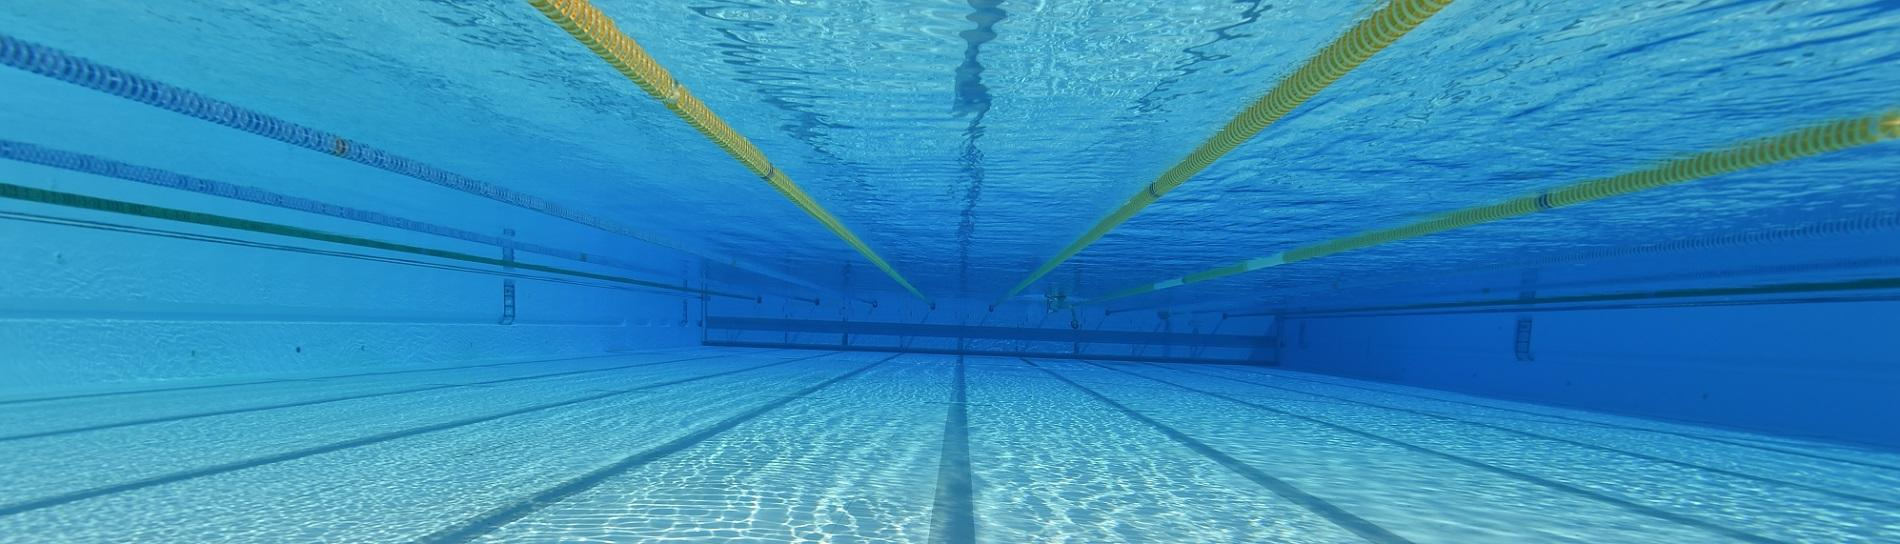 What Is Aquaphobia And How To Overcome It